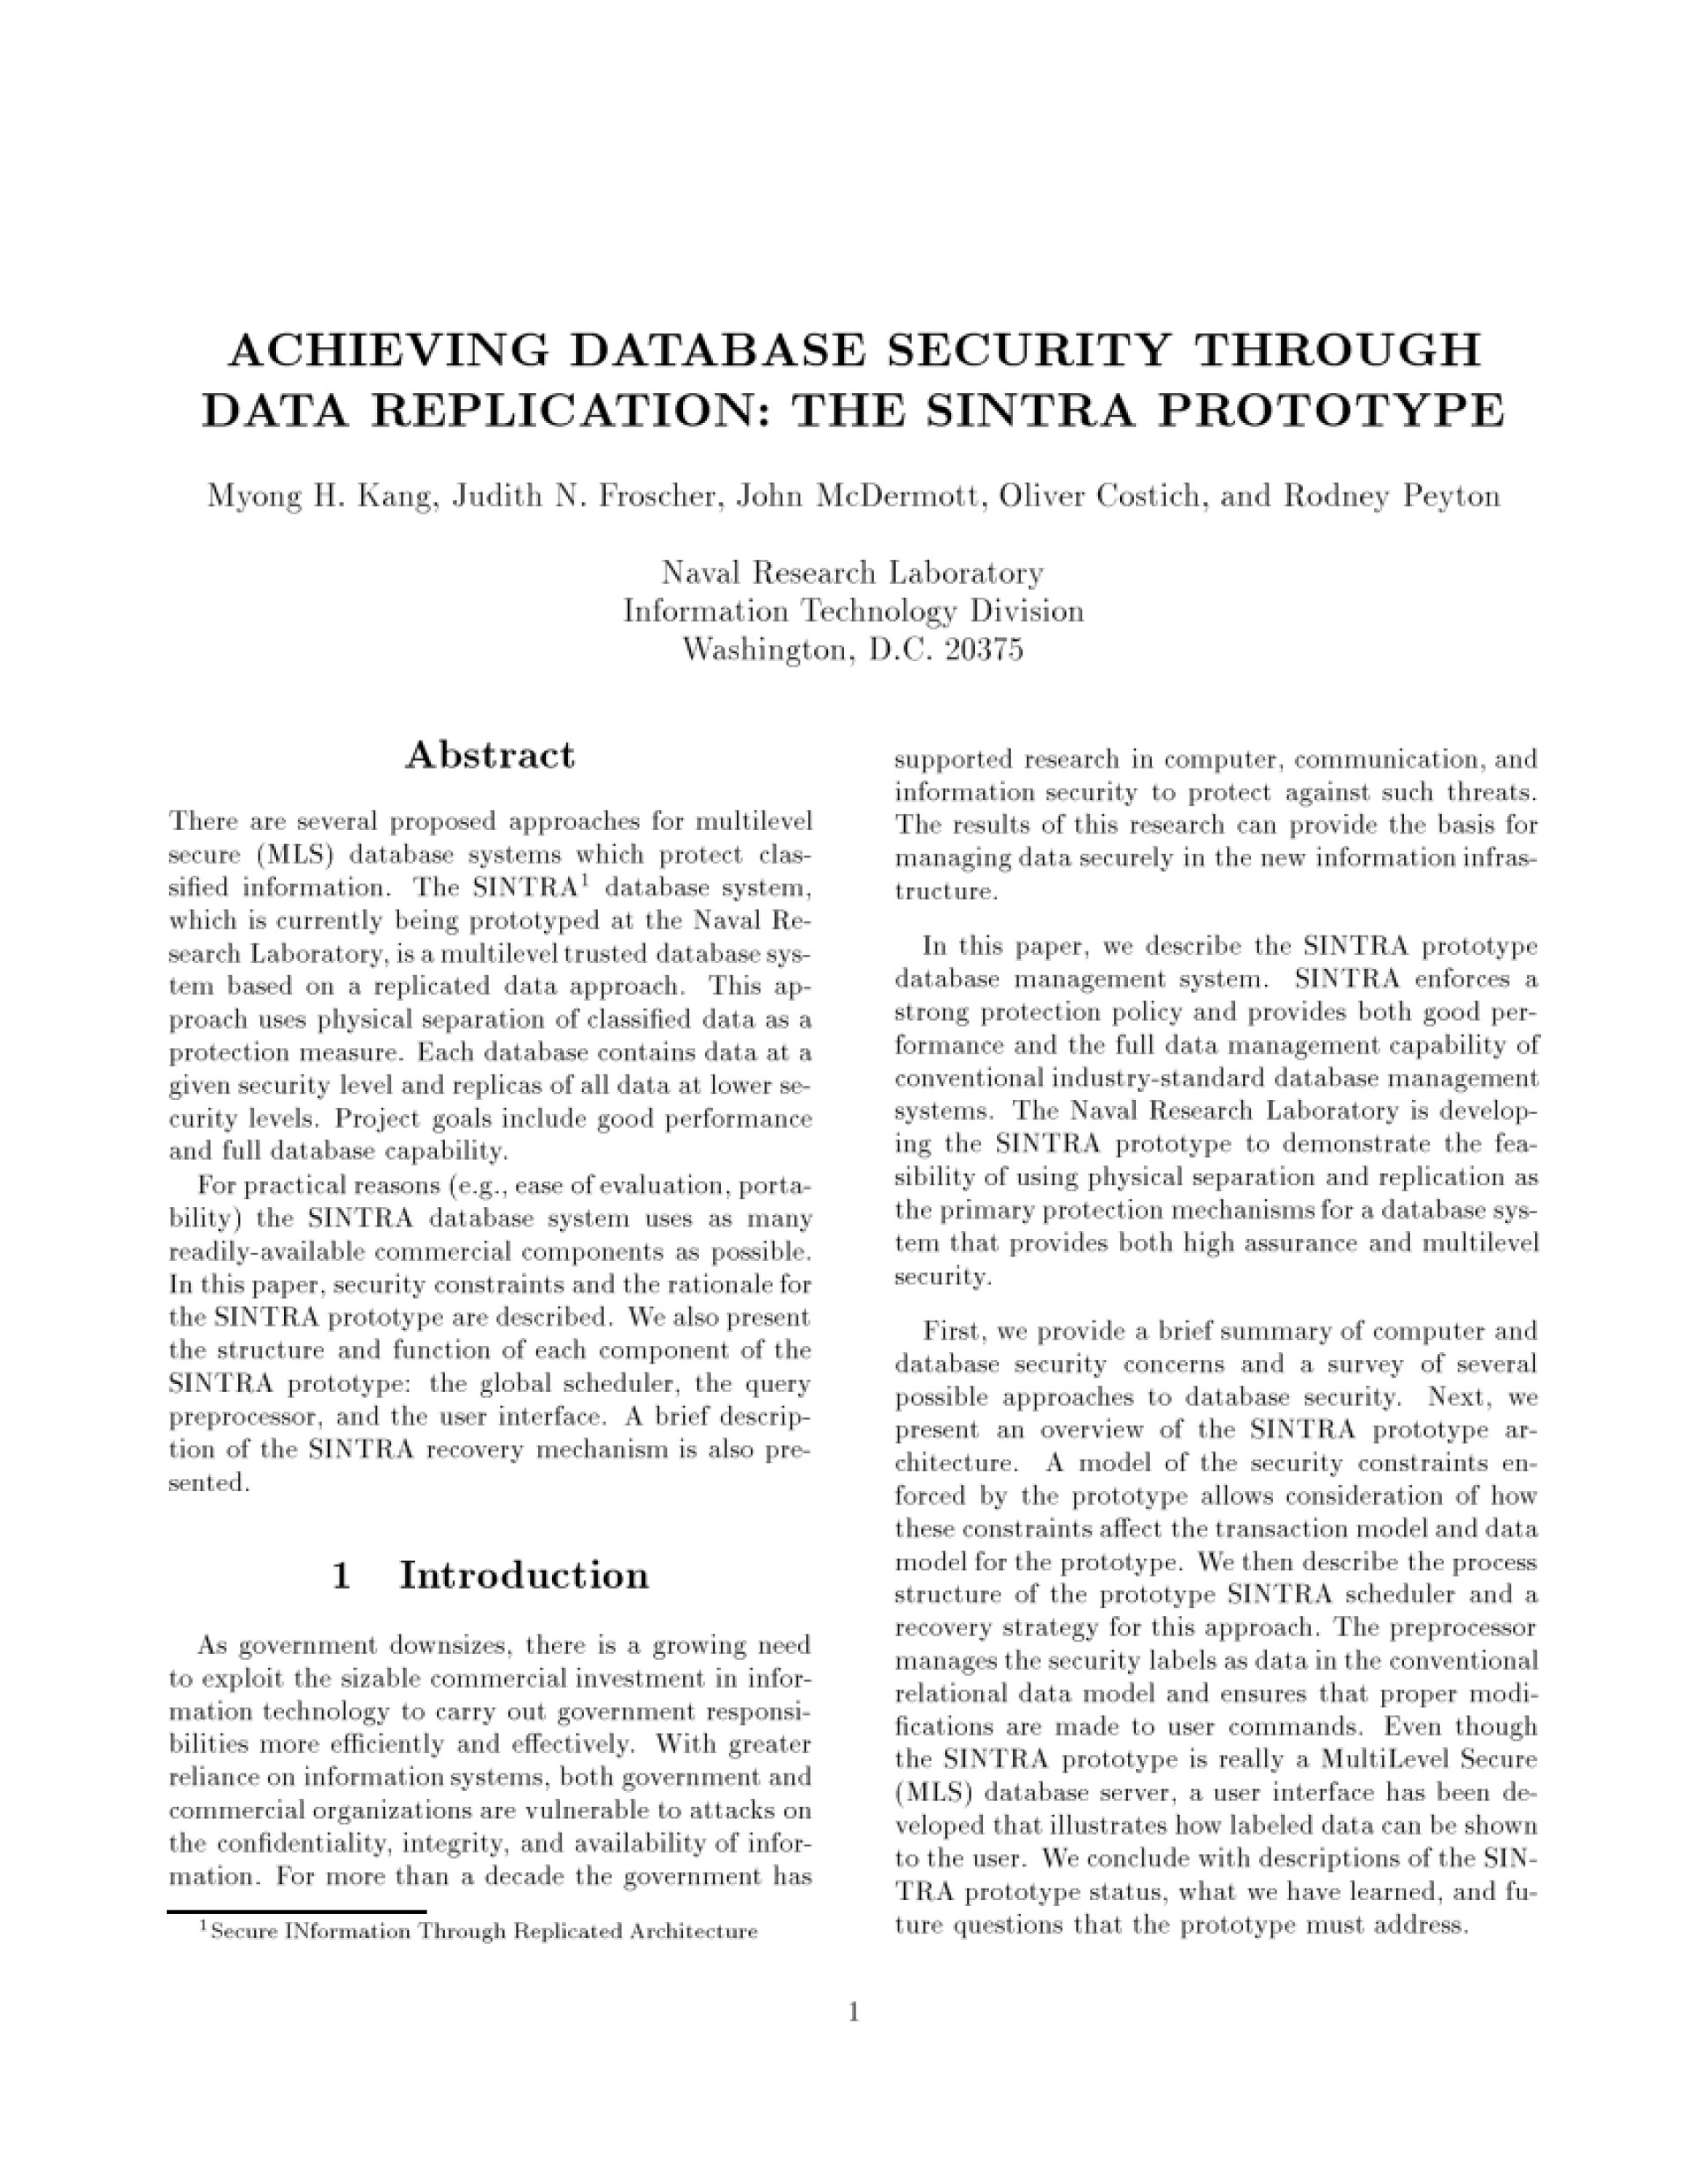 003 Database Security Research Paper Abstract Fascinating 1920